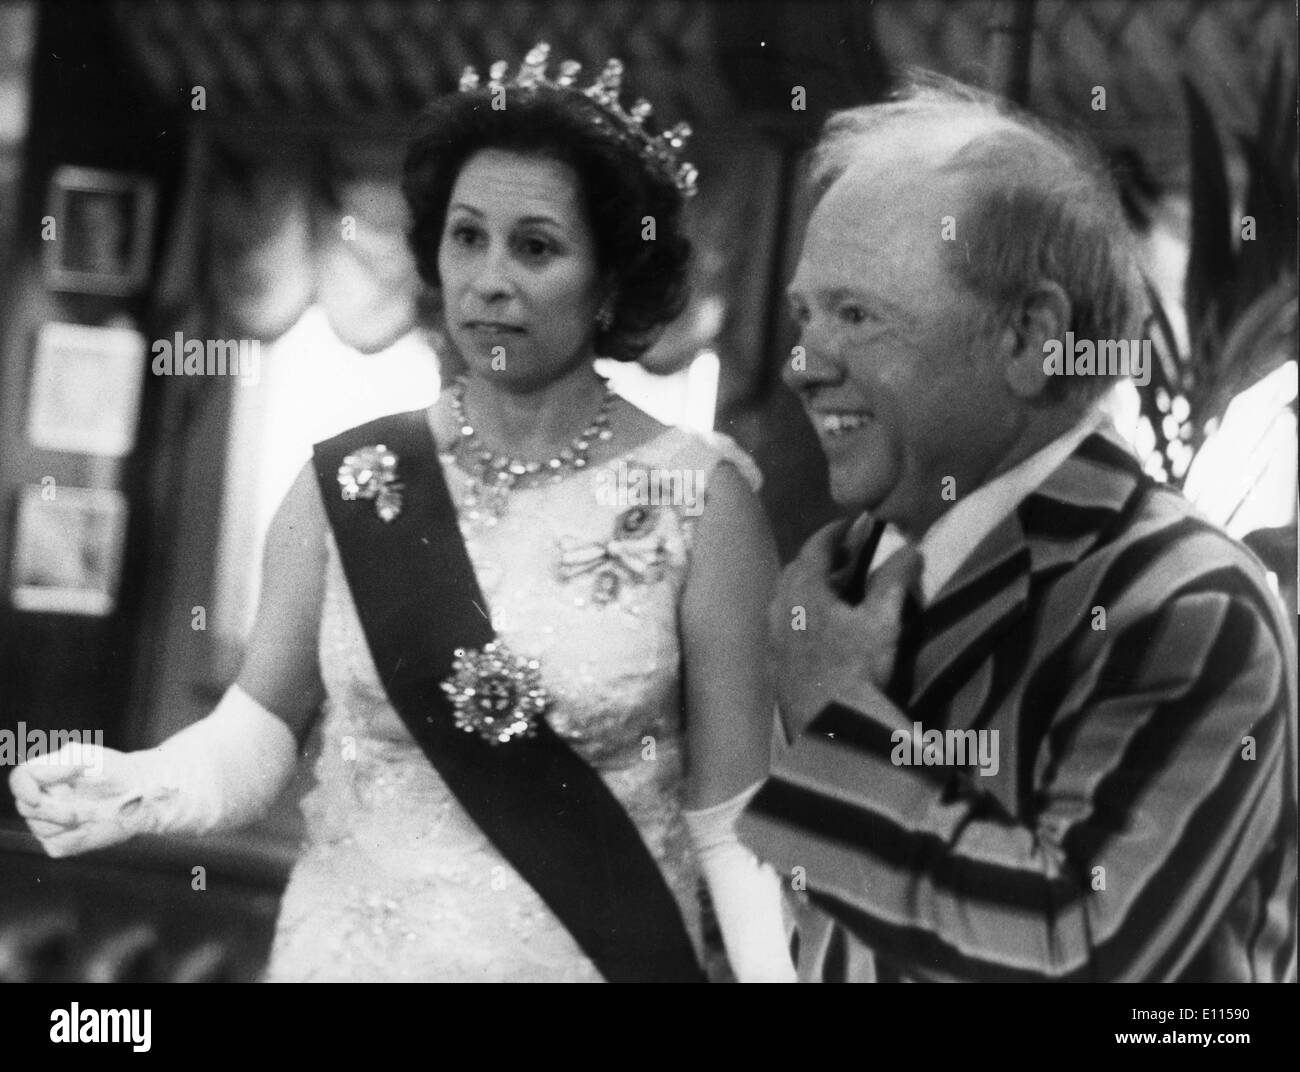 Actor Mickey Rooney visits with royalty - Stock Image